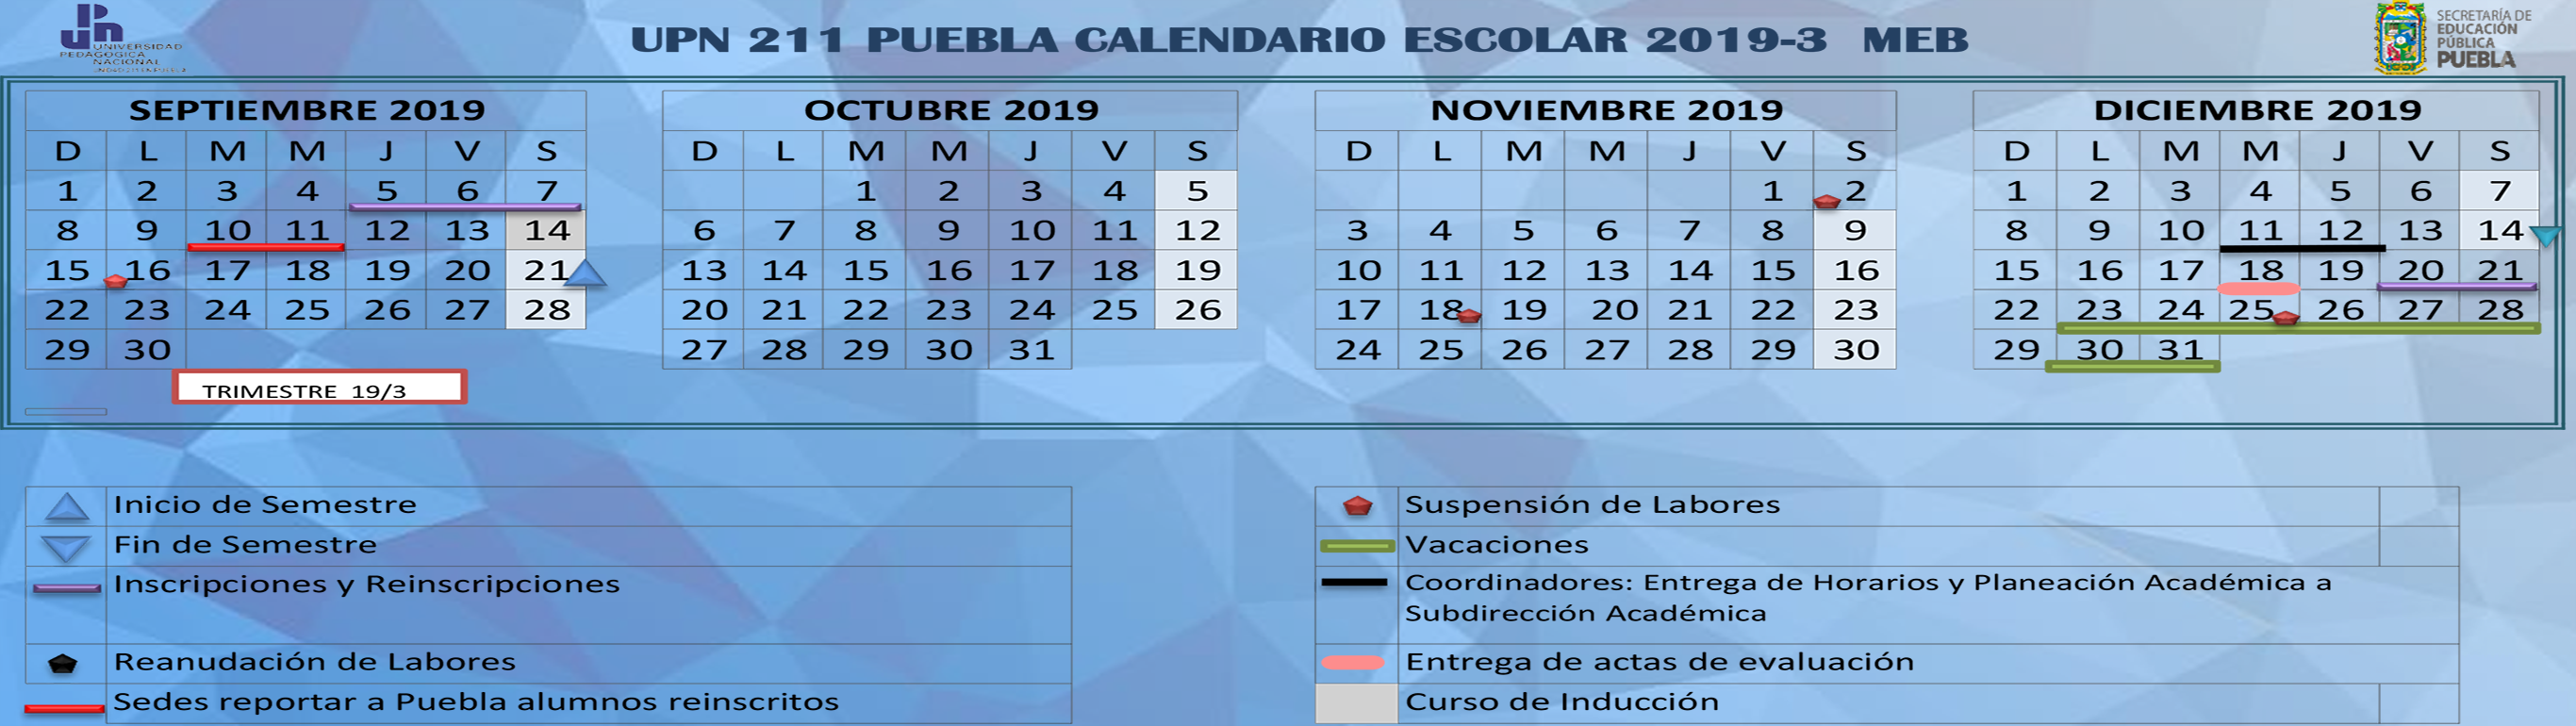 Calendario Escolar 18 19 Puebla.Plataforma Virtual Upn Meb